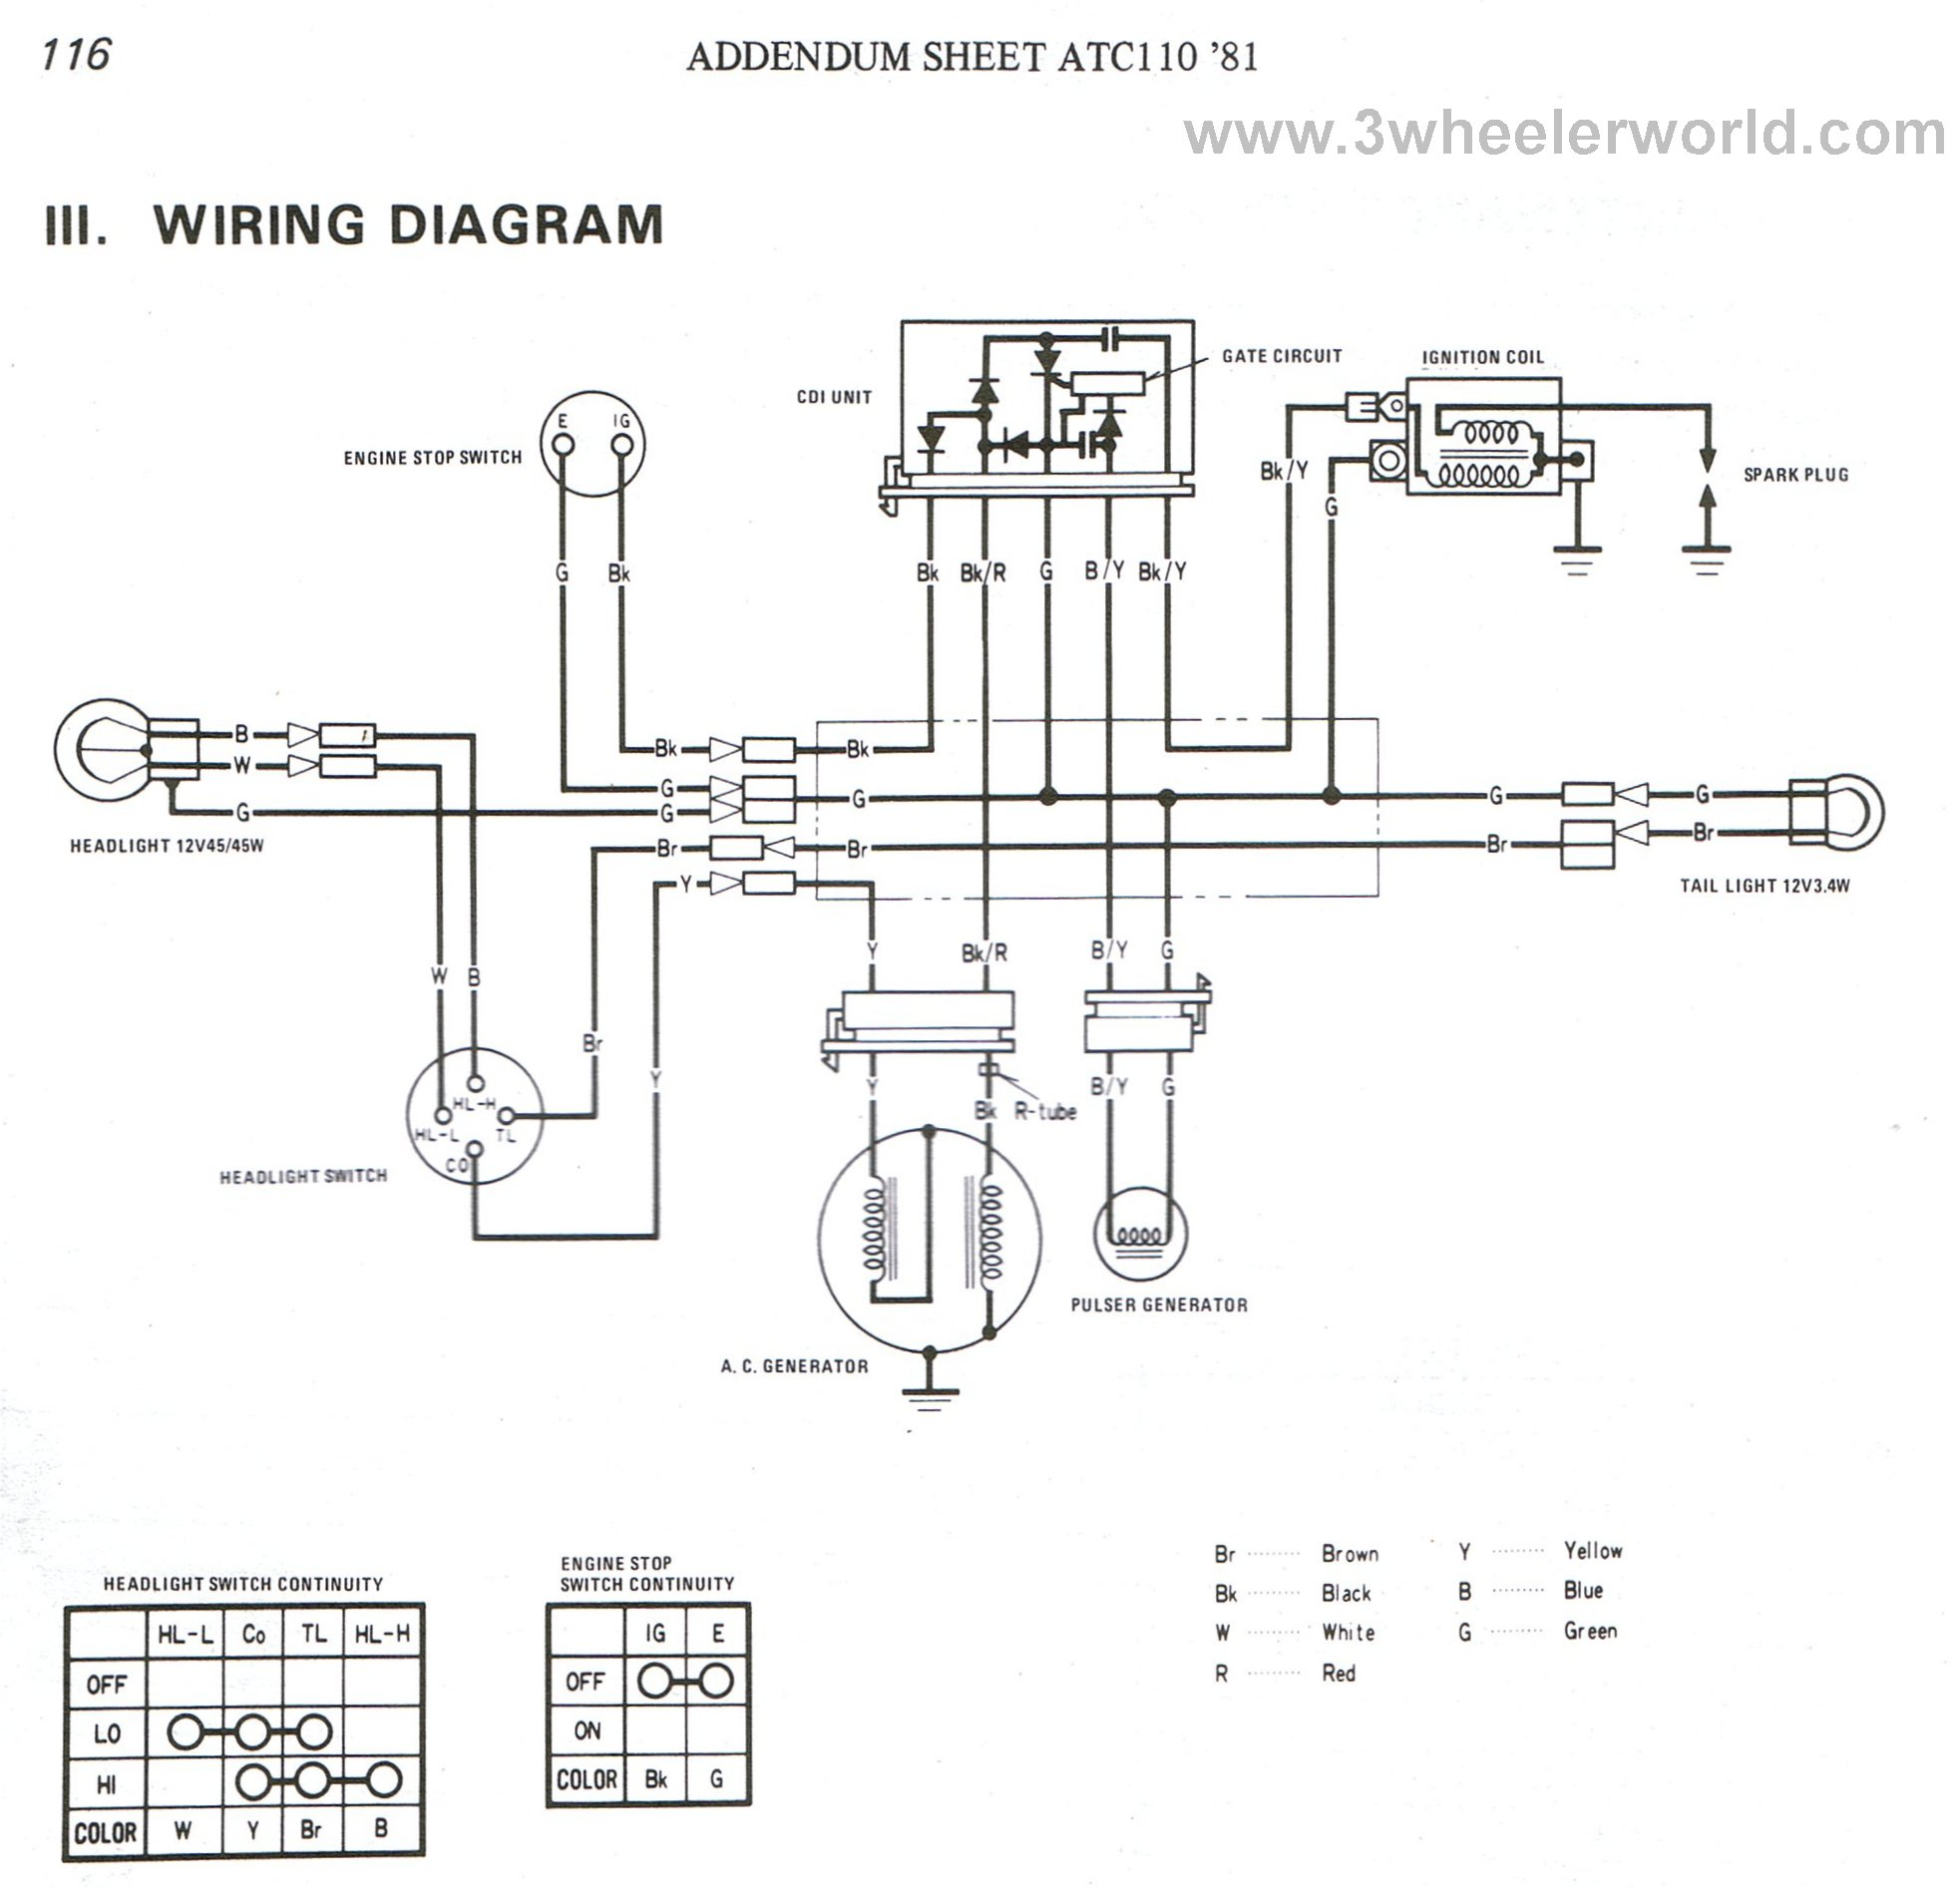 chinese quad bike wiring diagram wiring diagrams and schematics wiring diagram chinese quad bike